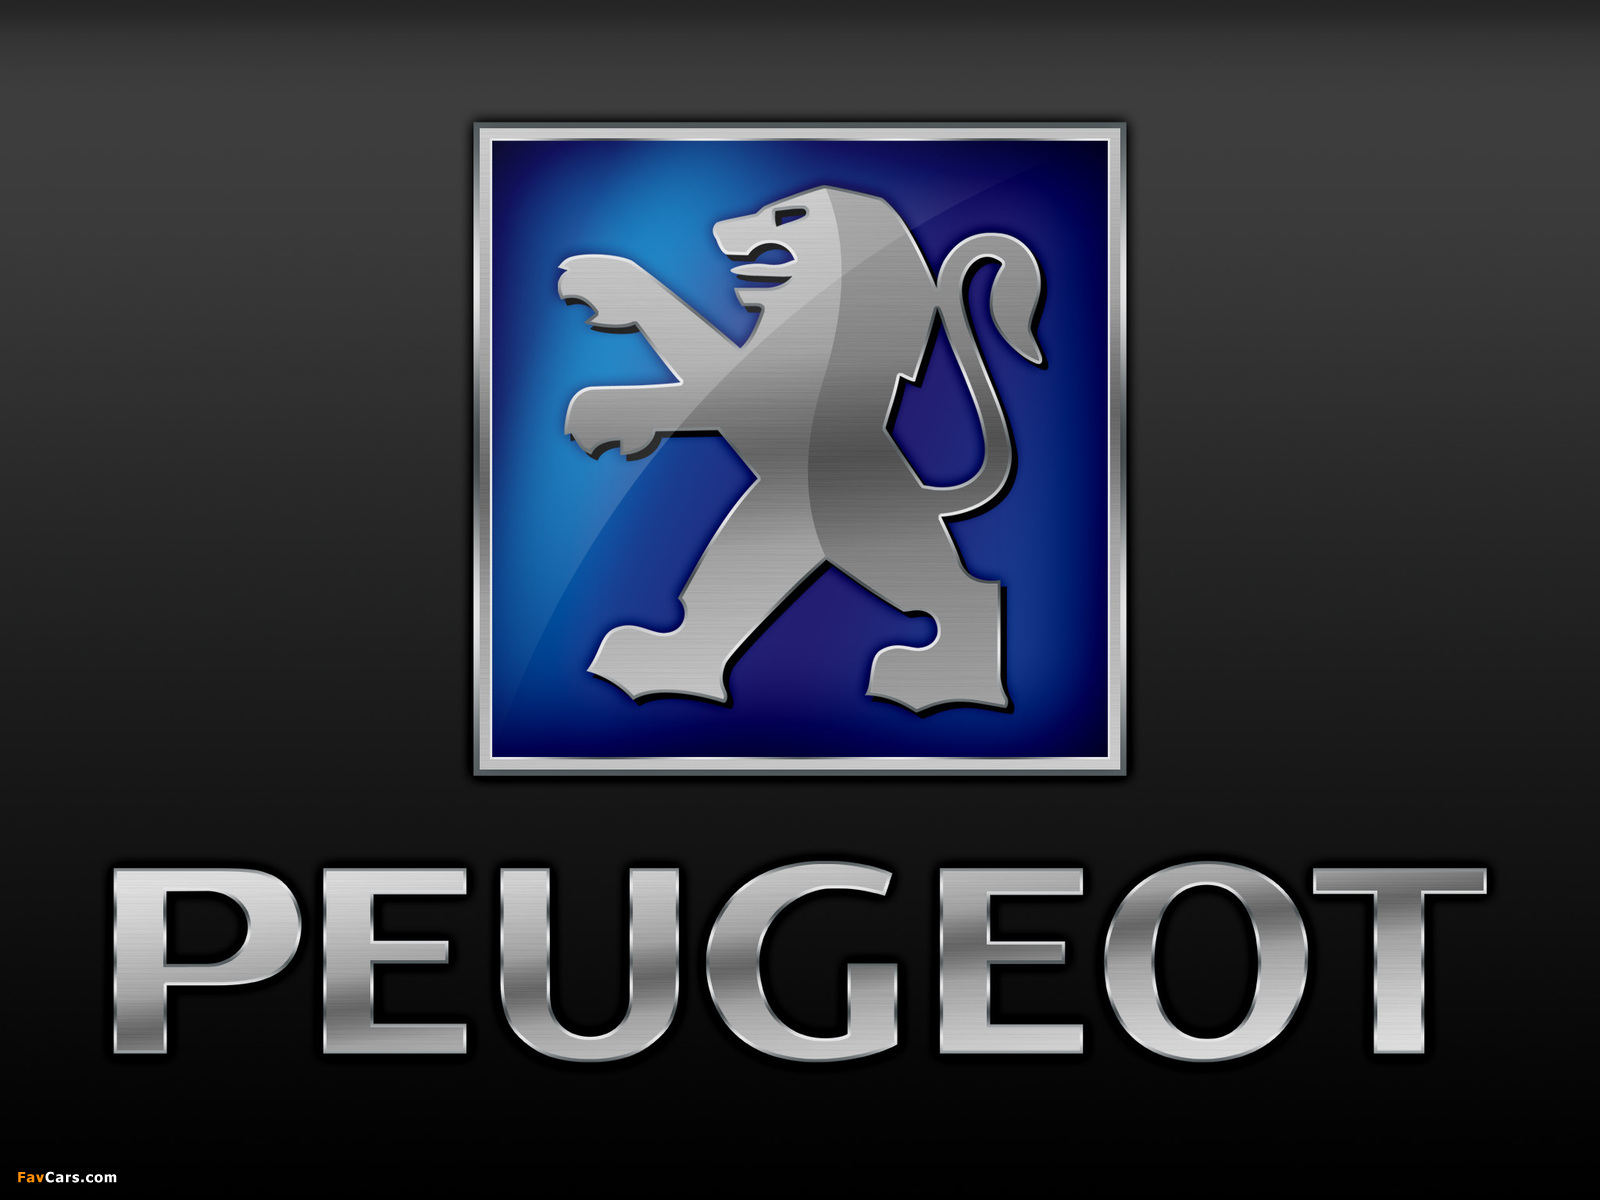 Peugeot wallpapers (1600 x 1200)